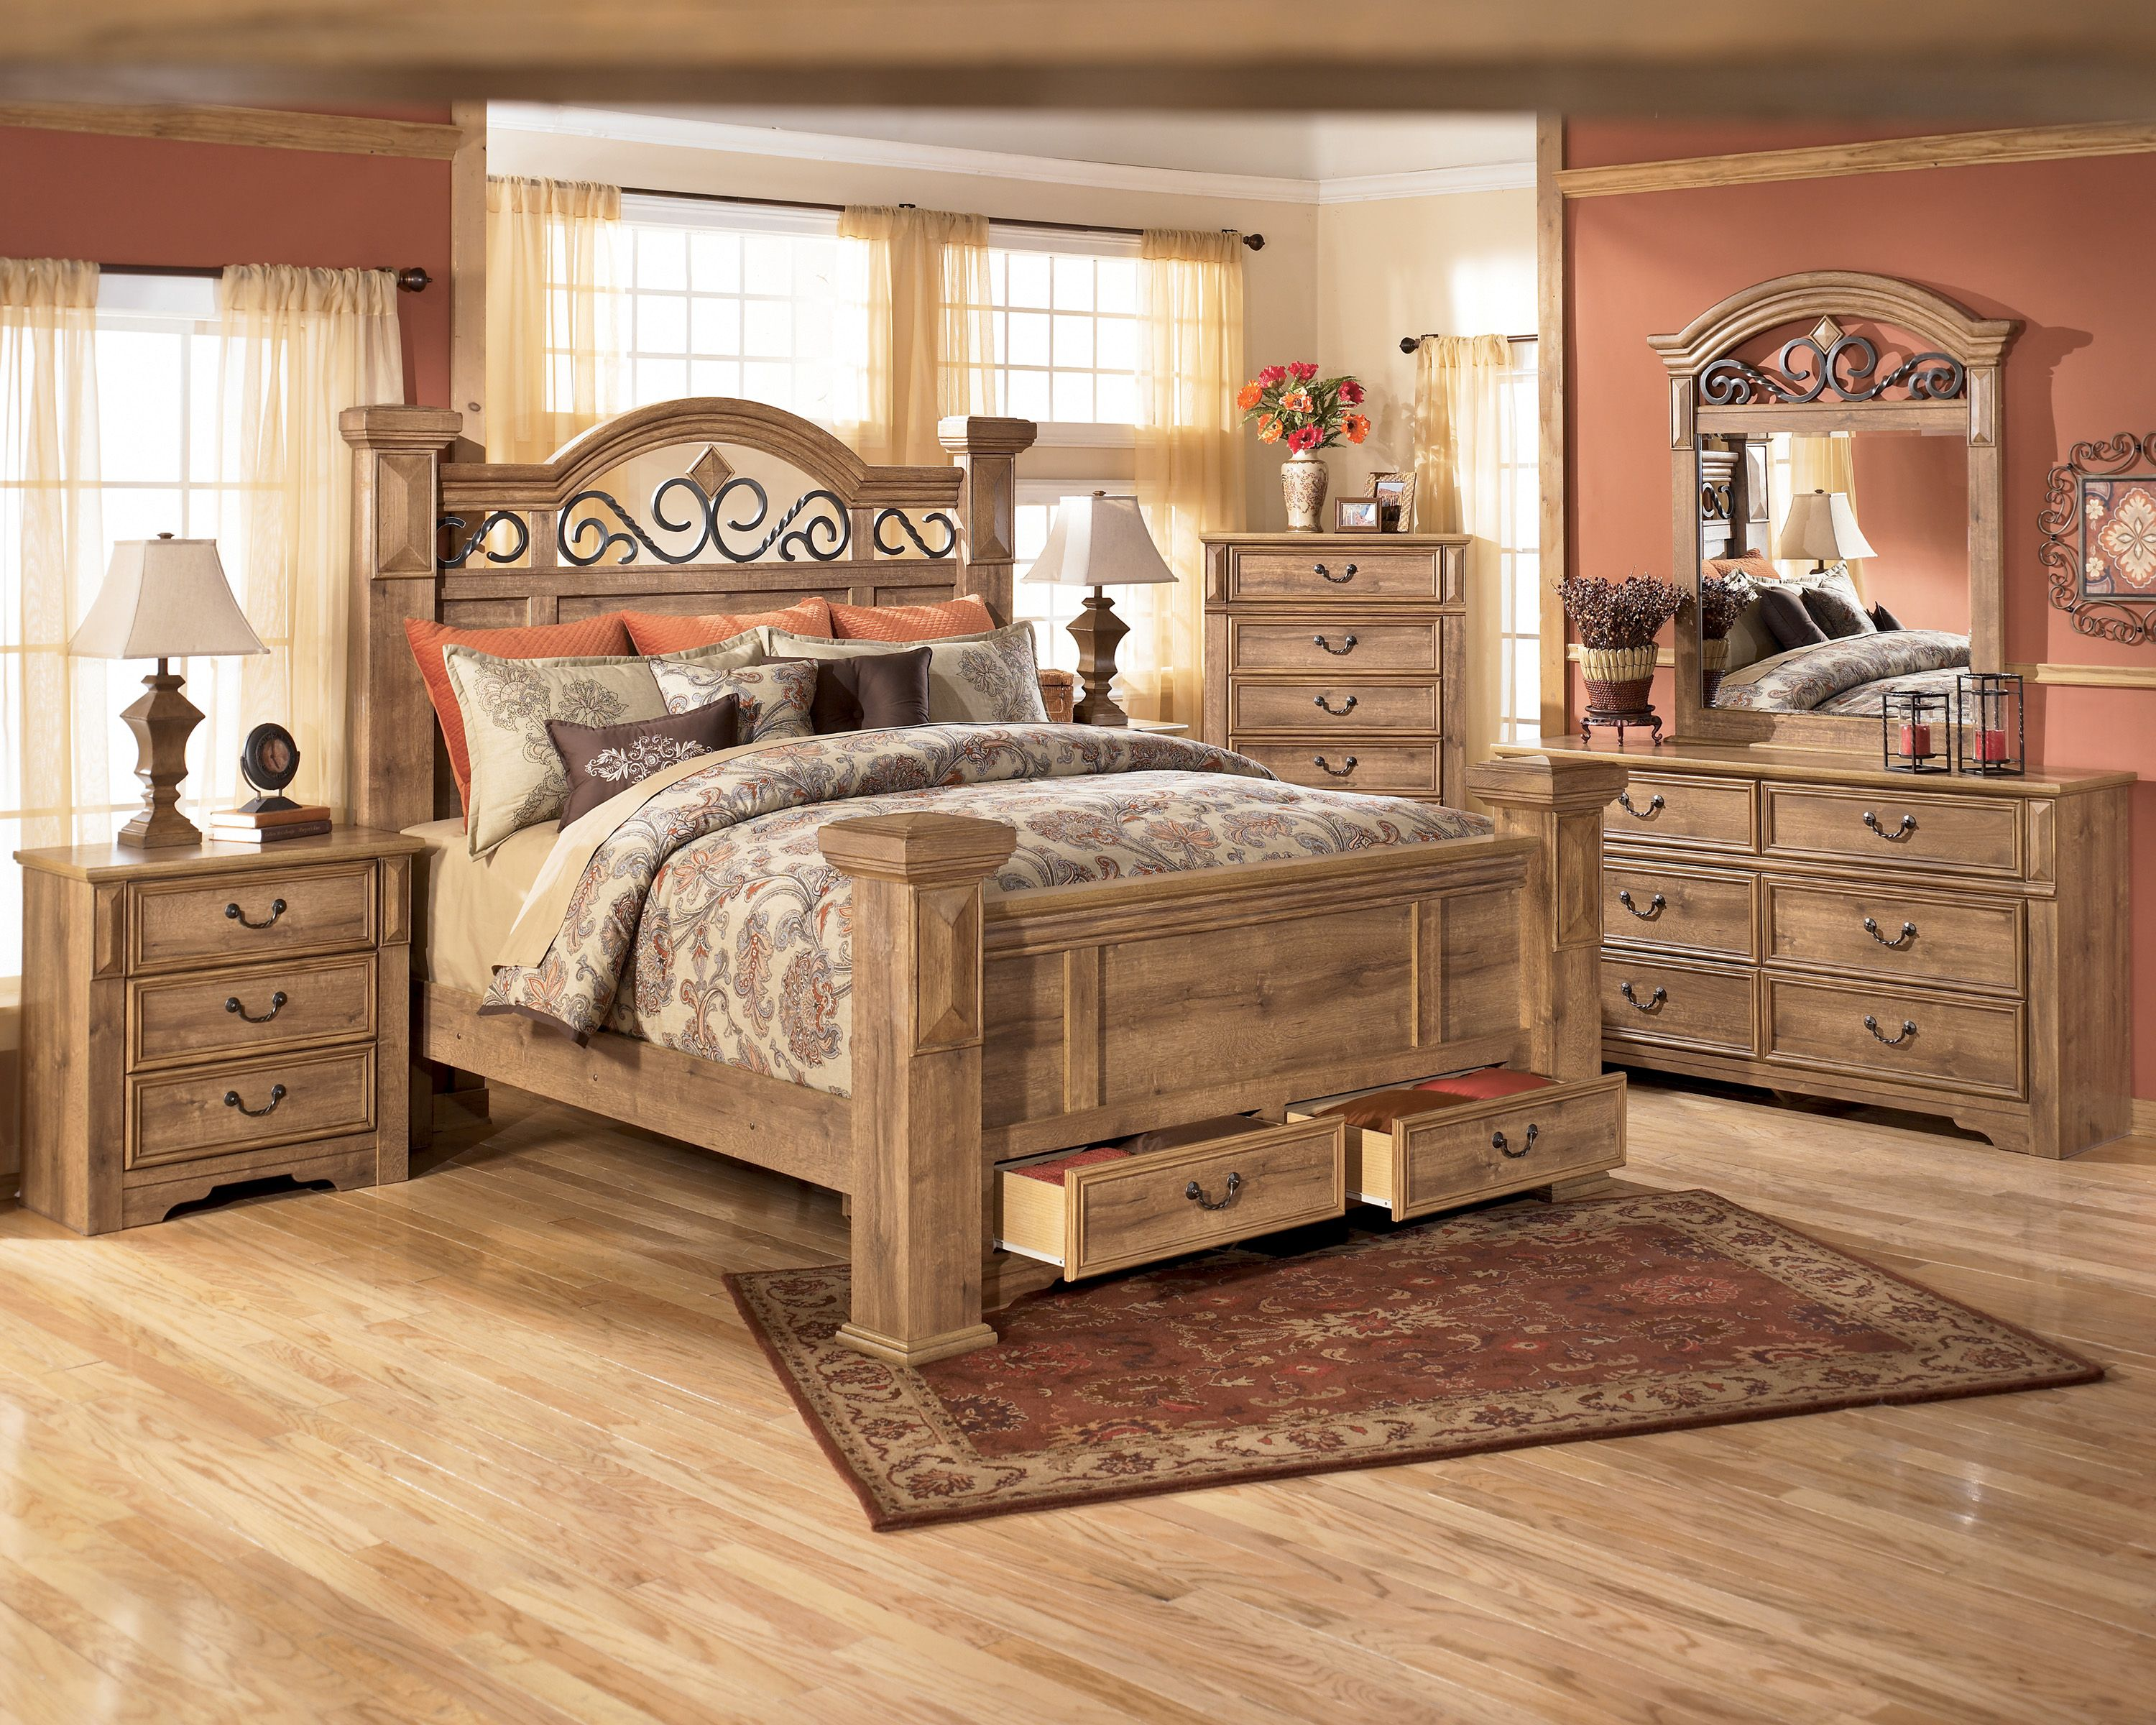 shop enrico pc i modernmist queen room bed limited bedroom set